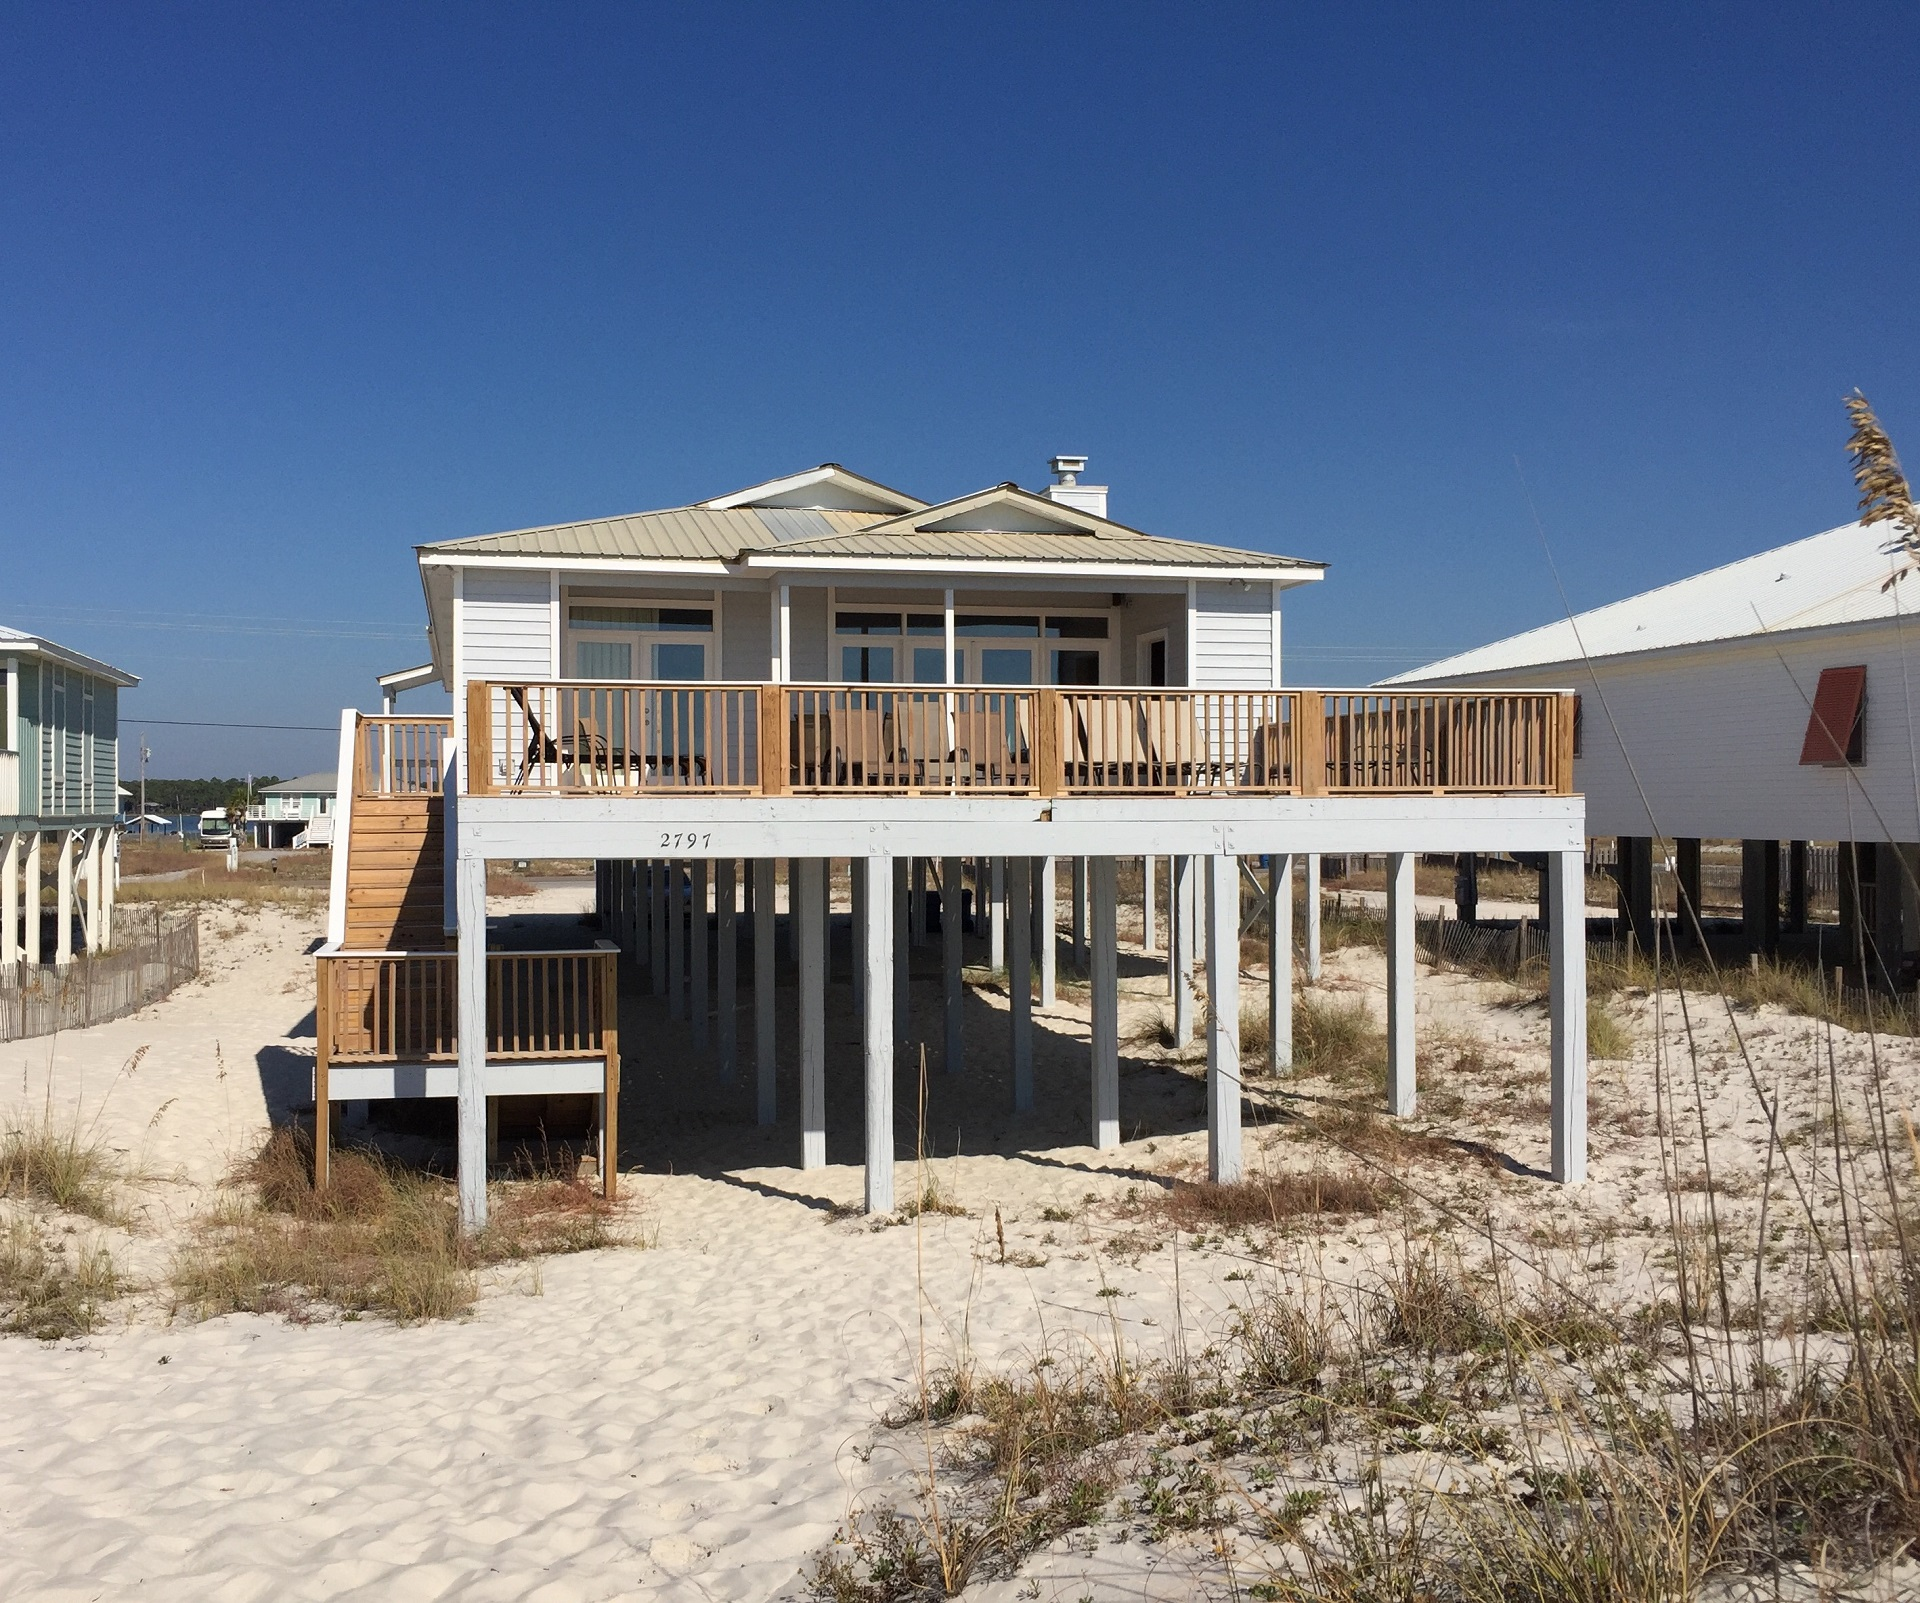 A Houses For Rent Rent A Beach House In June Only 3 Night Minimum Gulf Shores